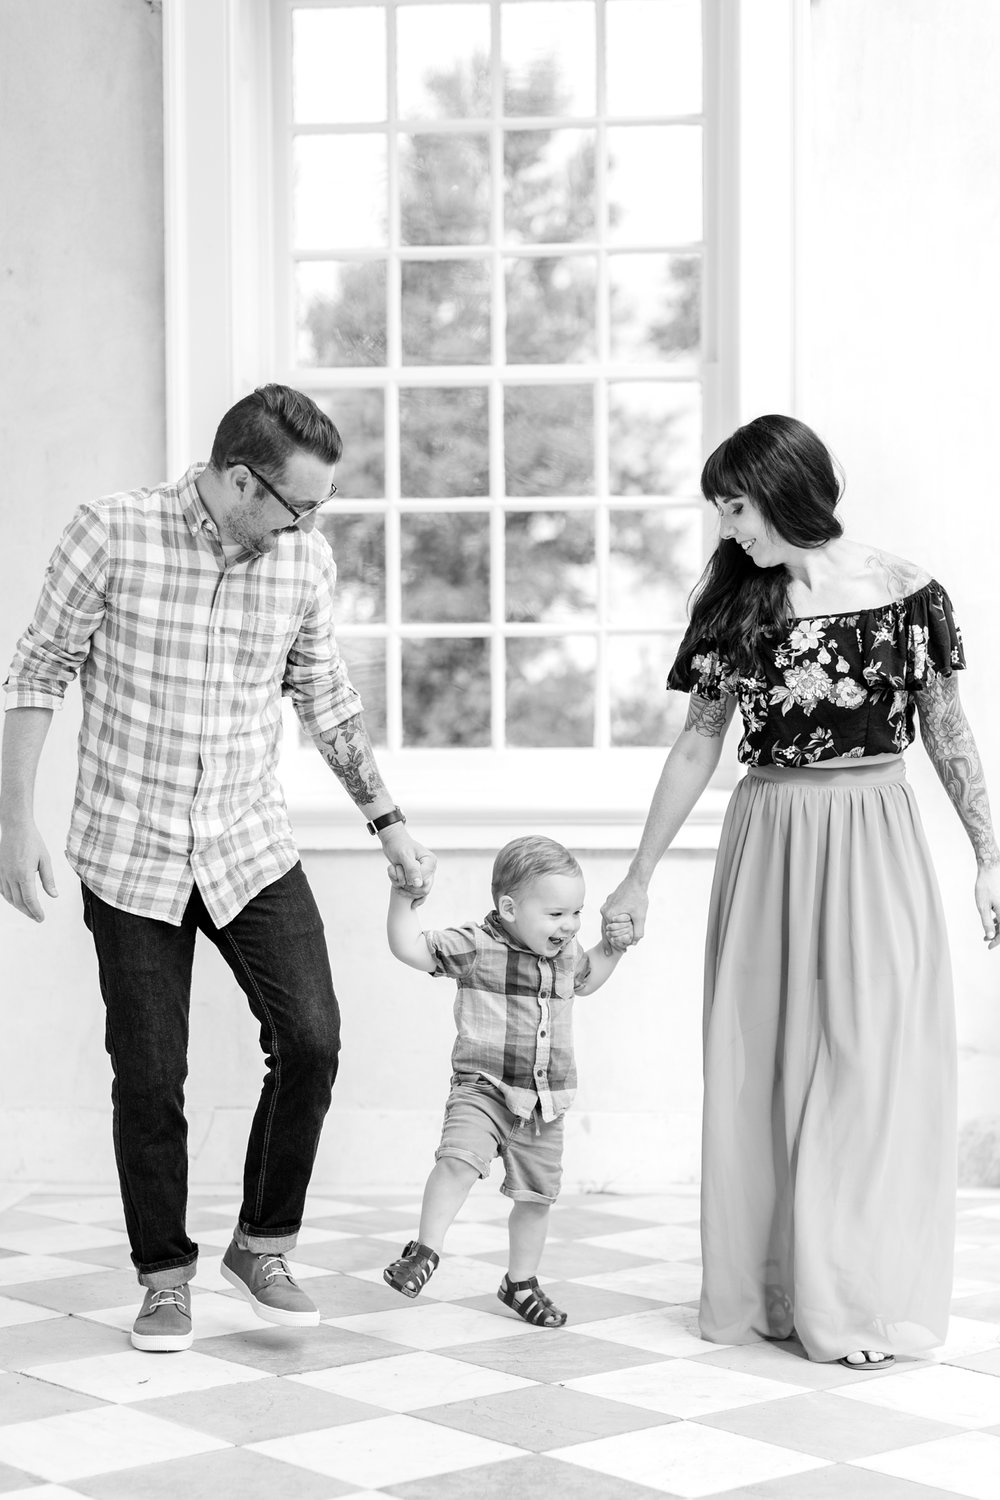 See more from the   Lindstrom family session at the Hampton Historical Site here  !